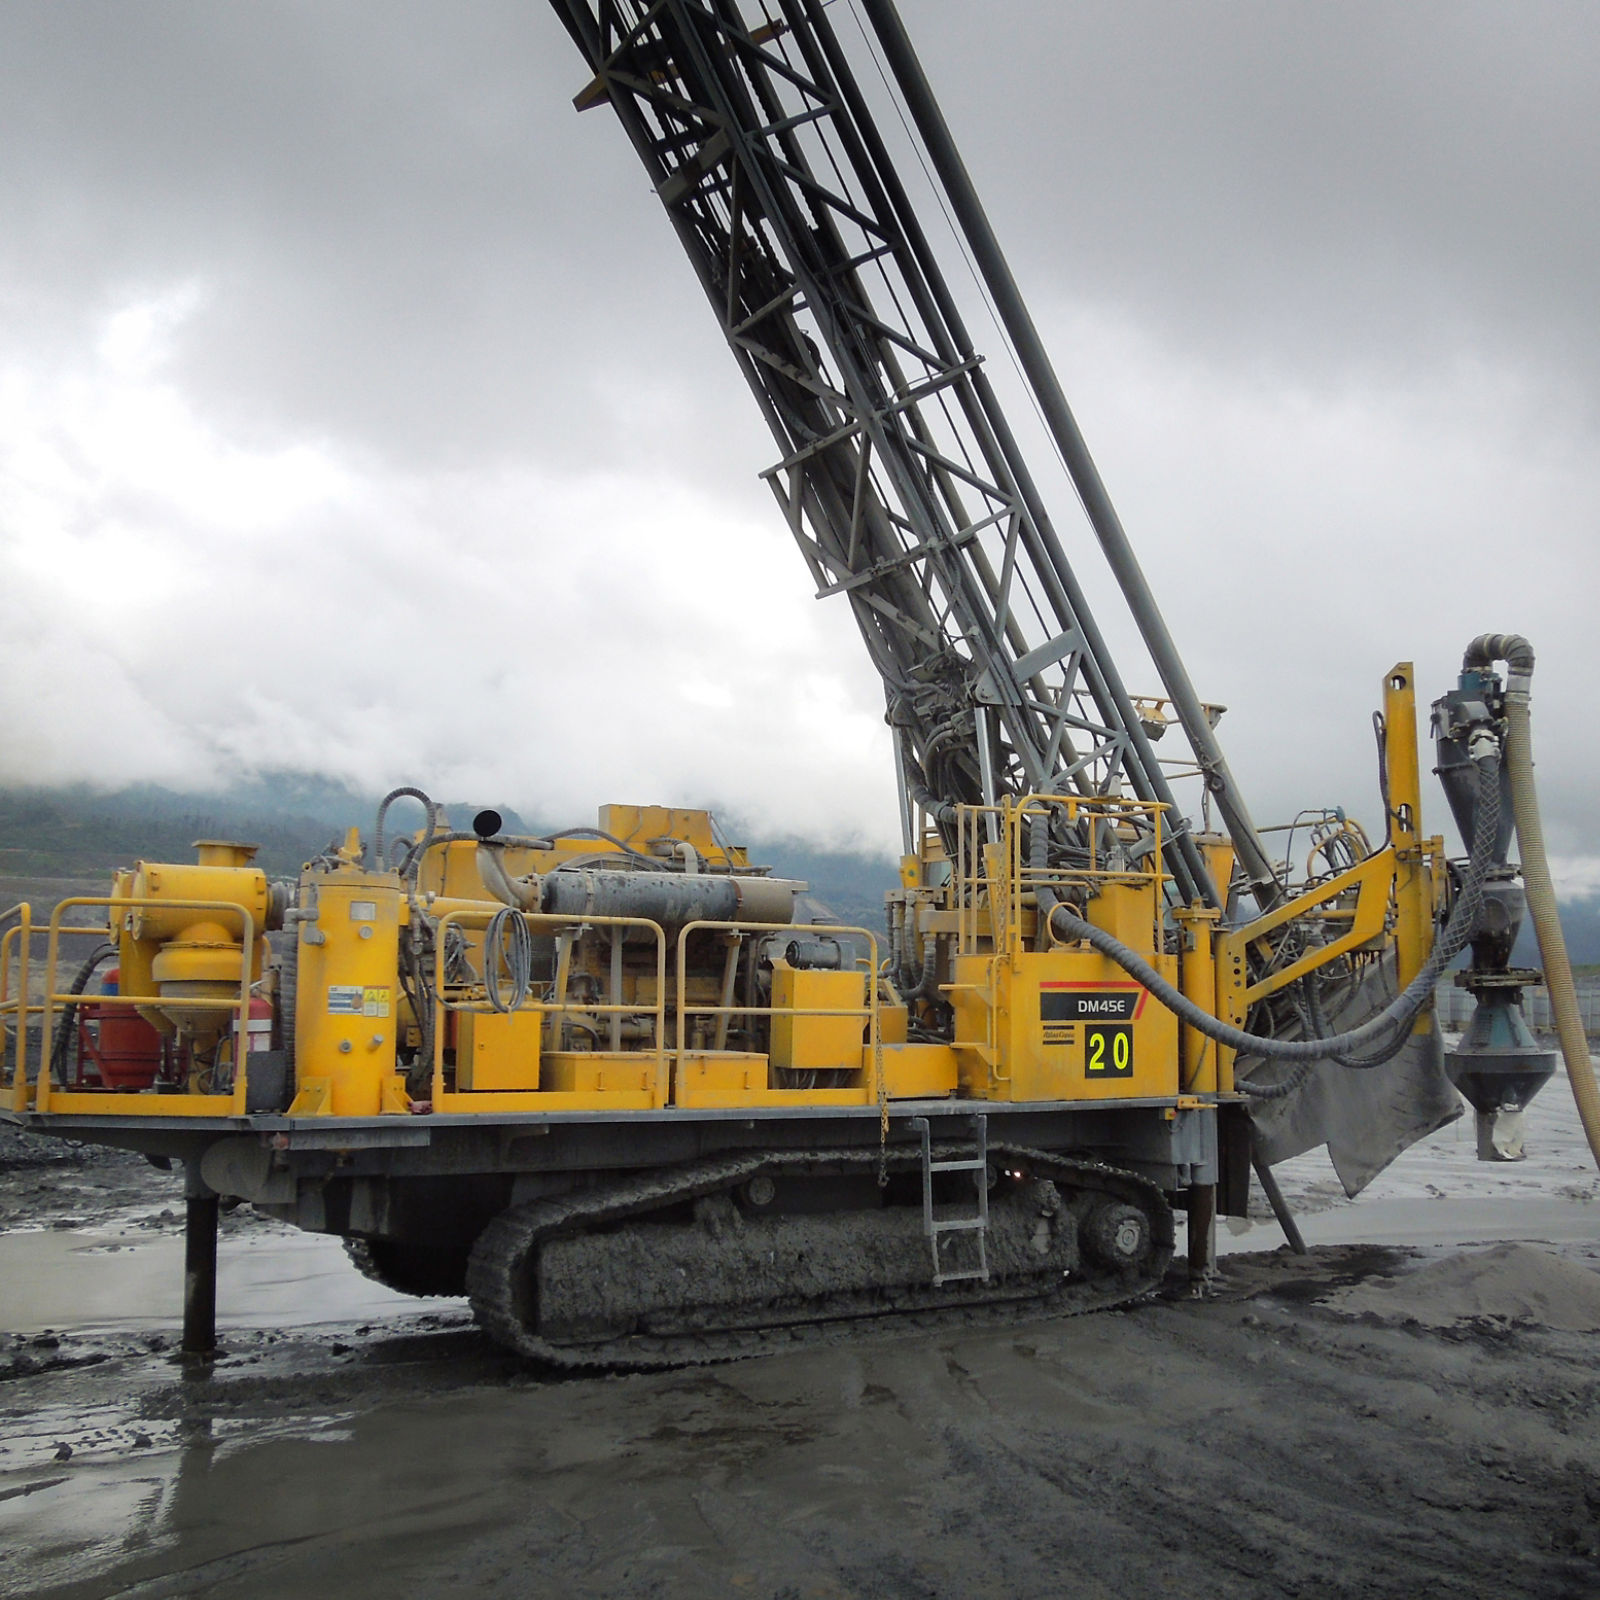 DM45 Reverse Circulation Blasthole Drill Rig